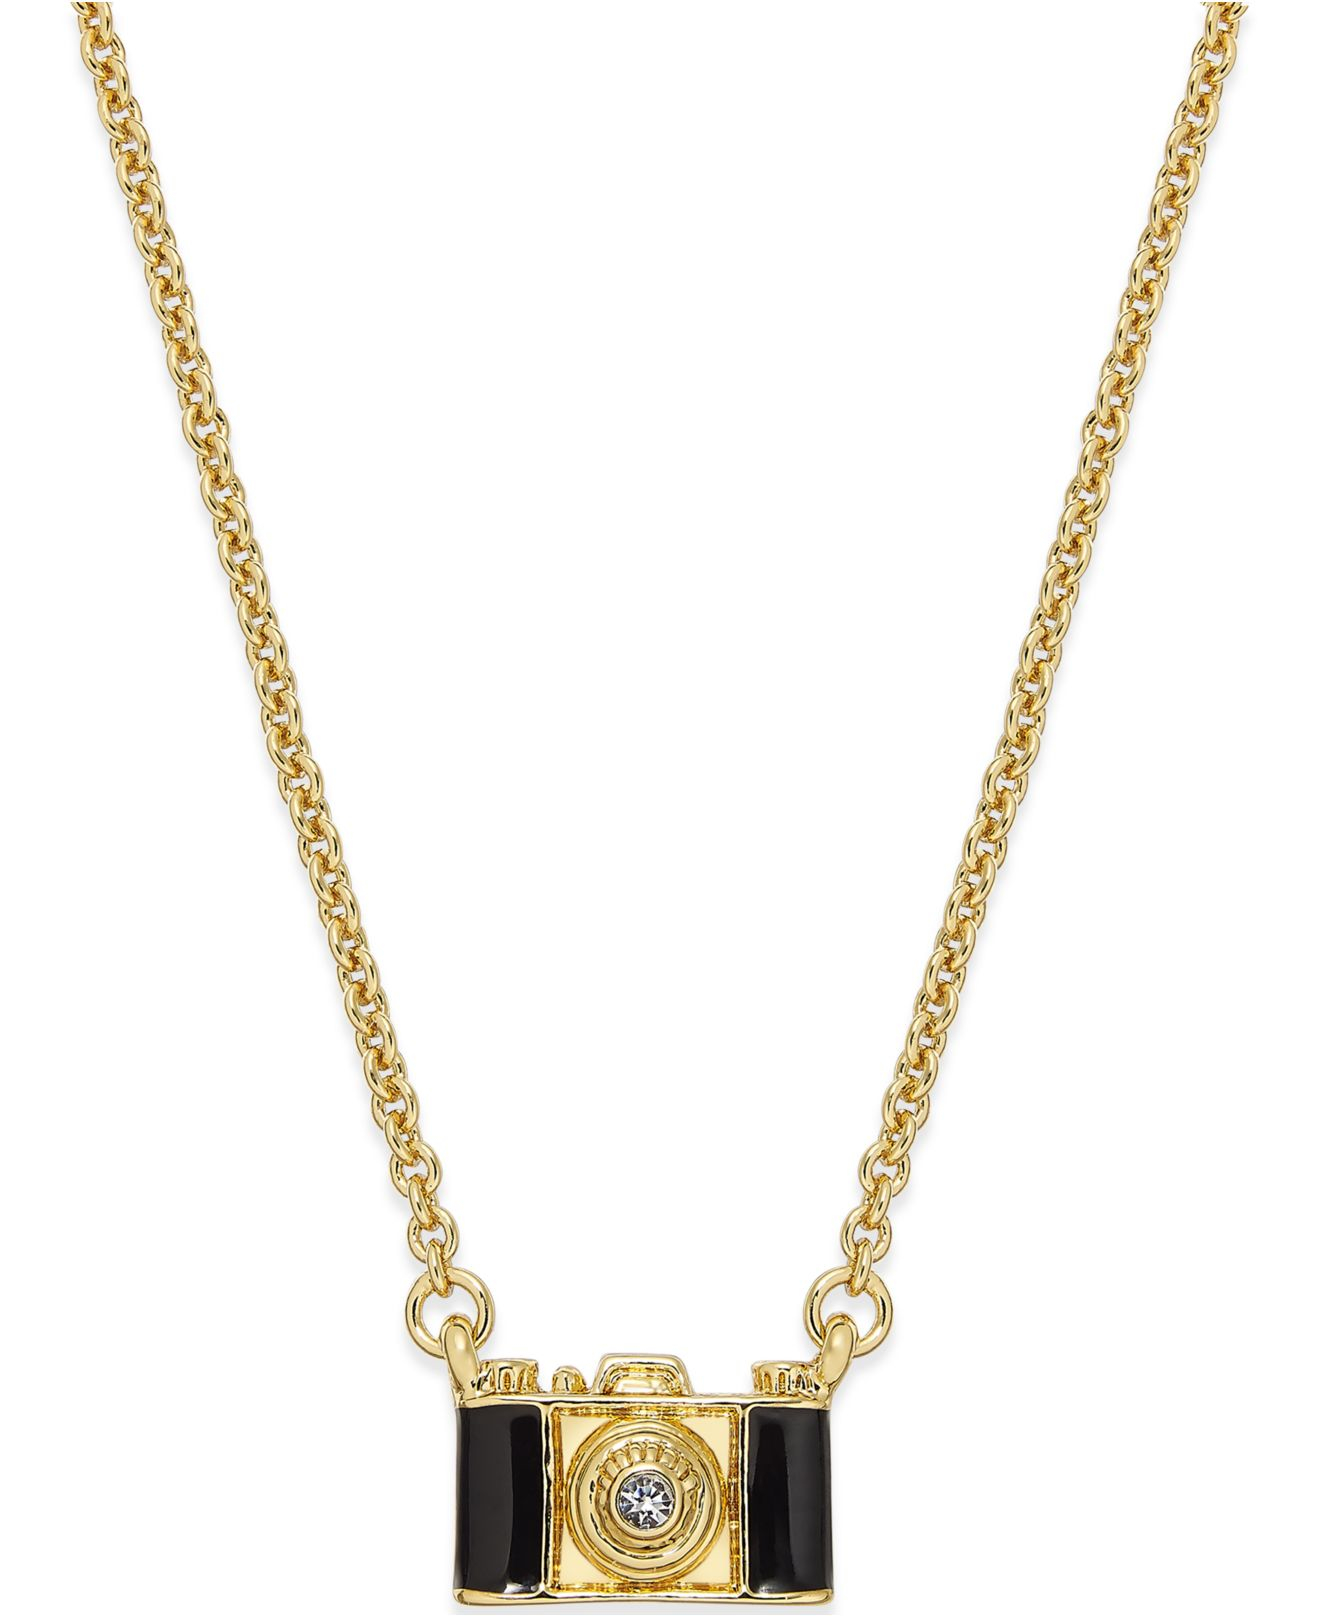 kate spade new york Metallic 12k Gold-plated Camera Pendant Necklace